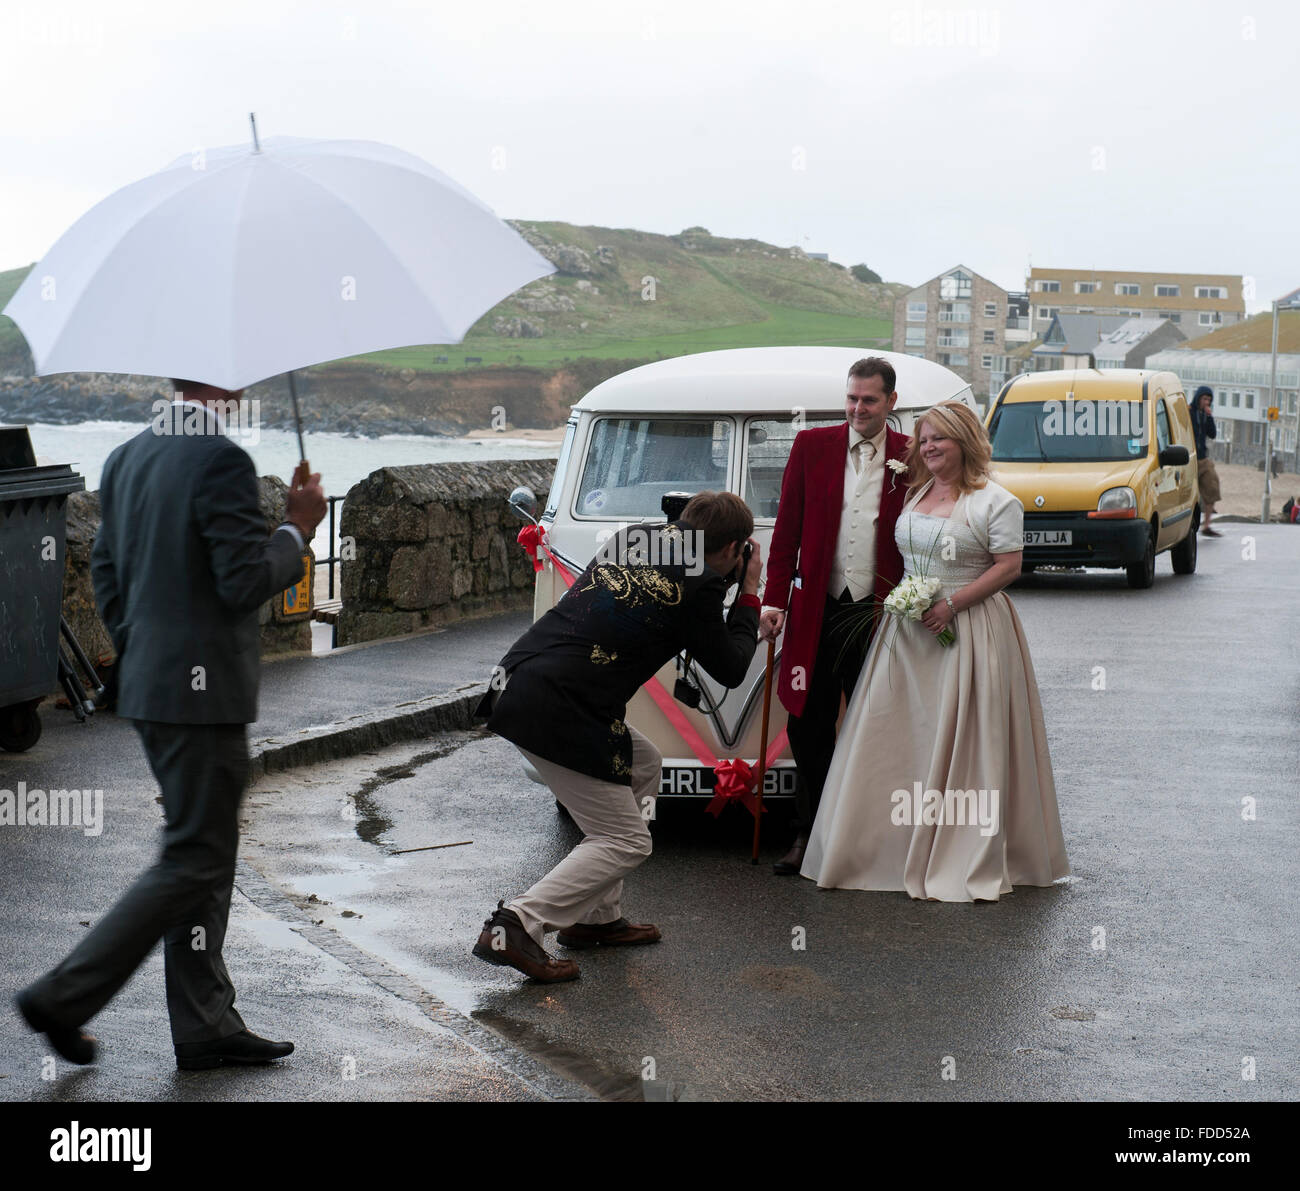 Bride and groom photographed in front of an Vintage Volkswagen VW Bus ca. 1965 oa a rainy day in St. Ives Cornwall - Stock Image